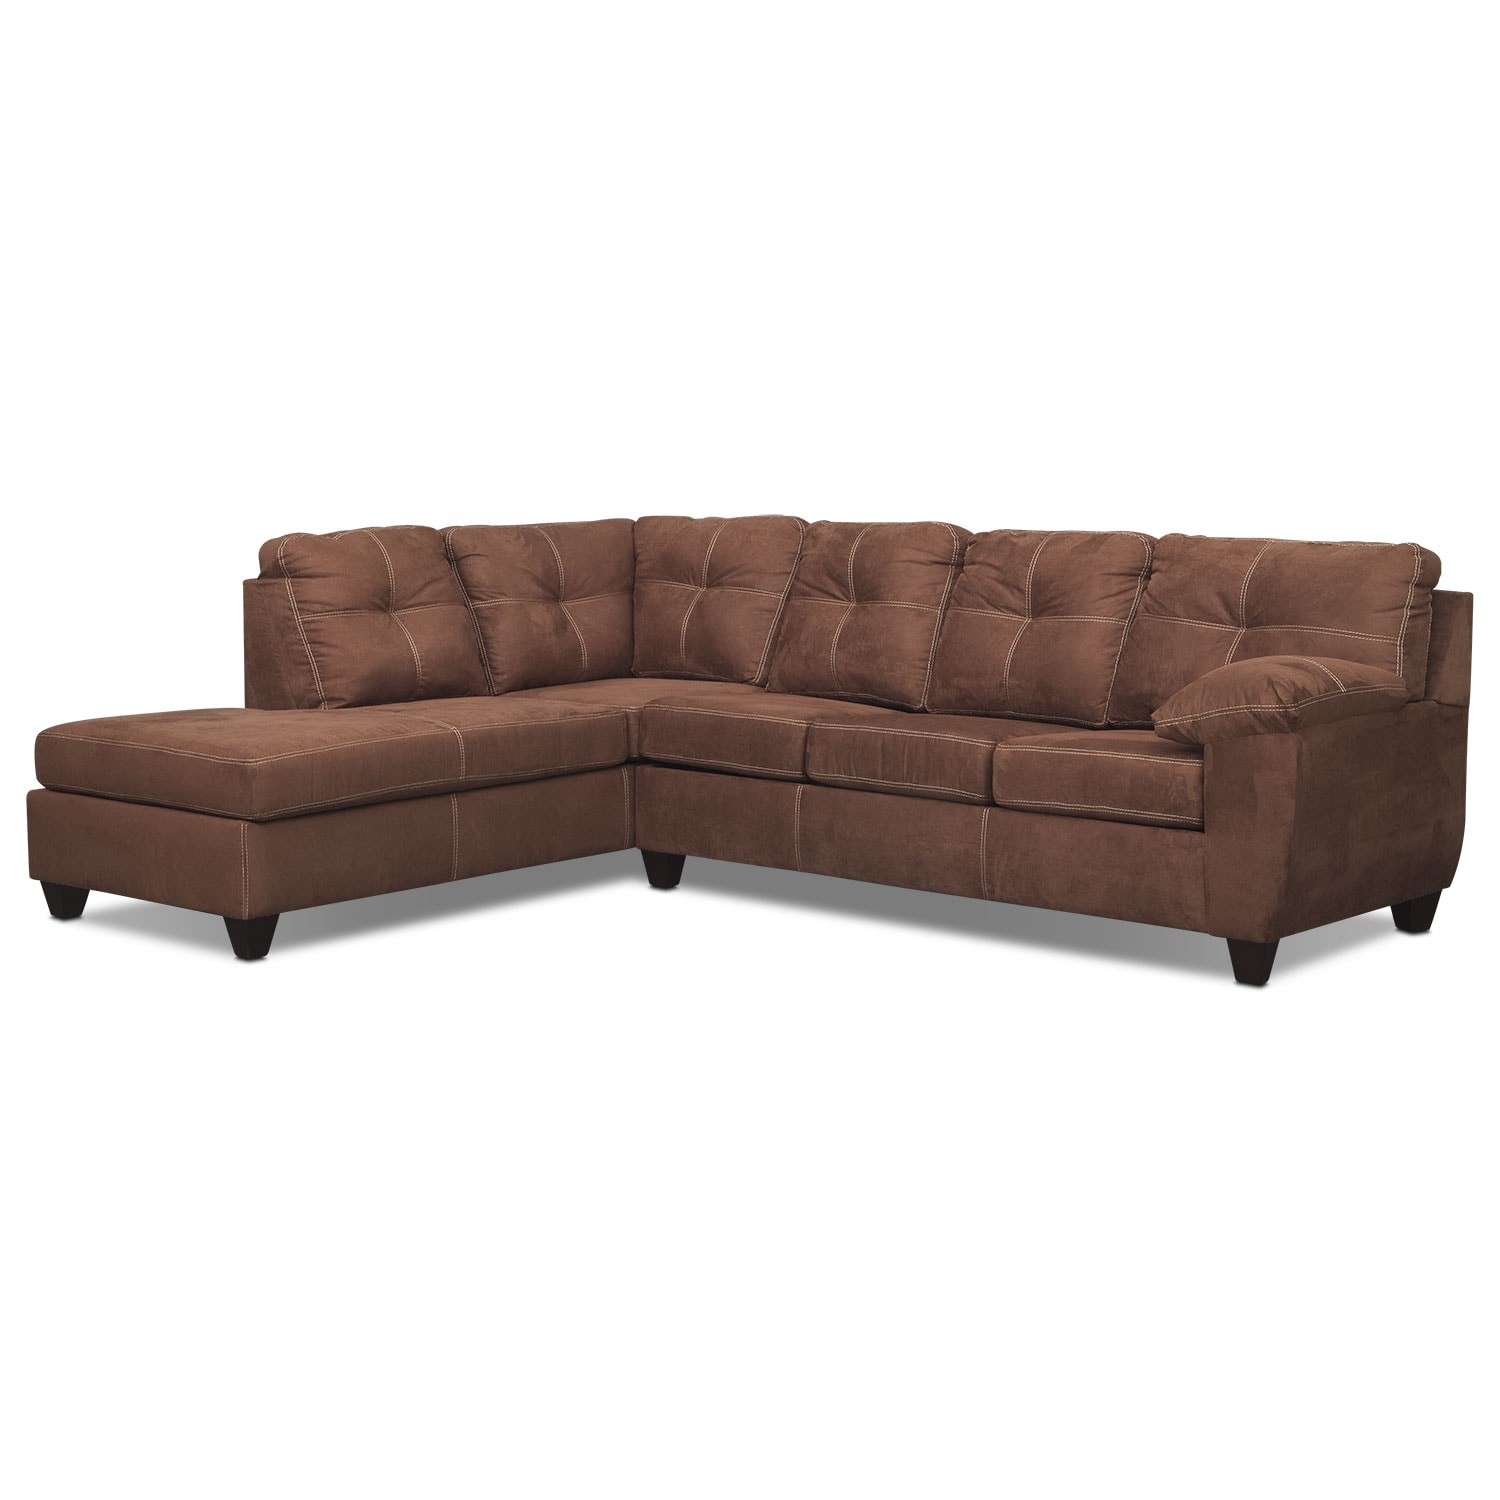 Living Room Furniture Evansville Indiana sleeper sofas | value city | value city furniture